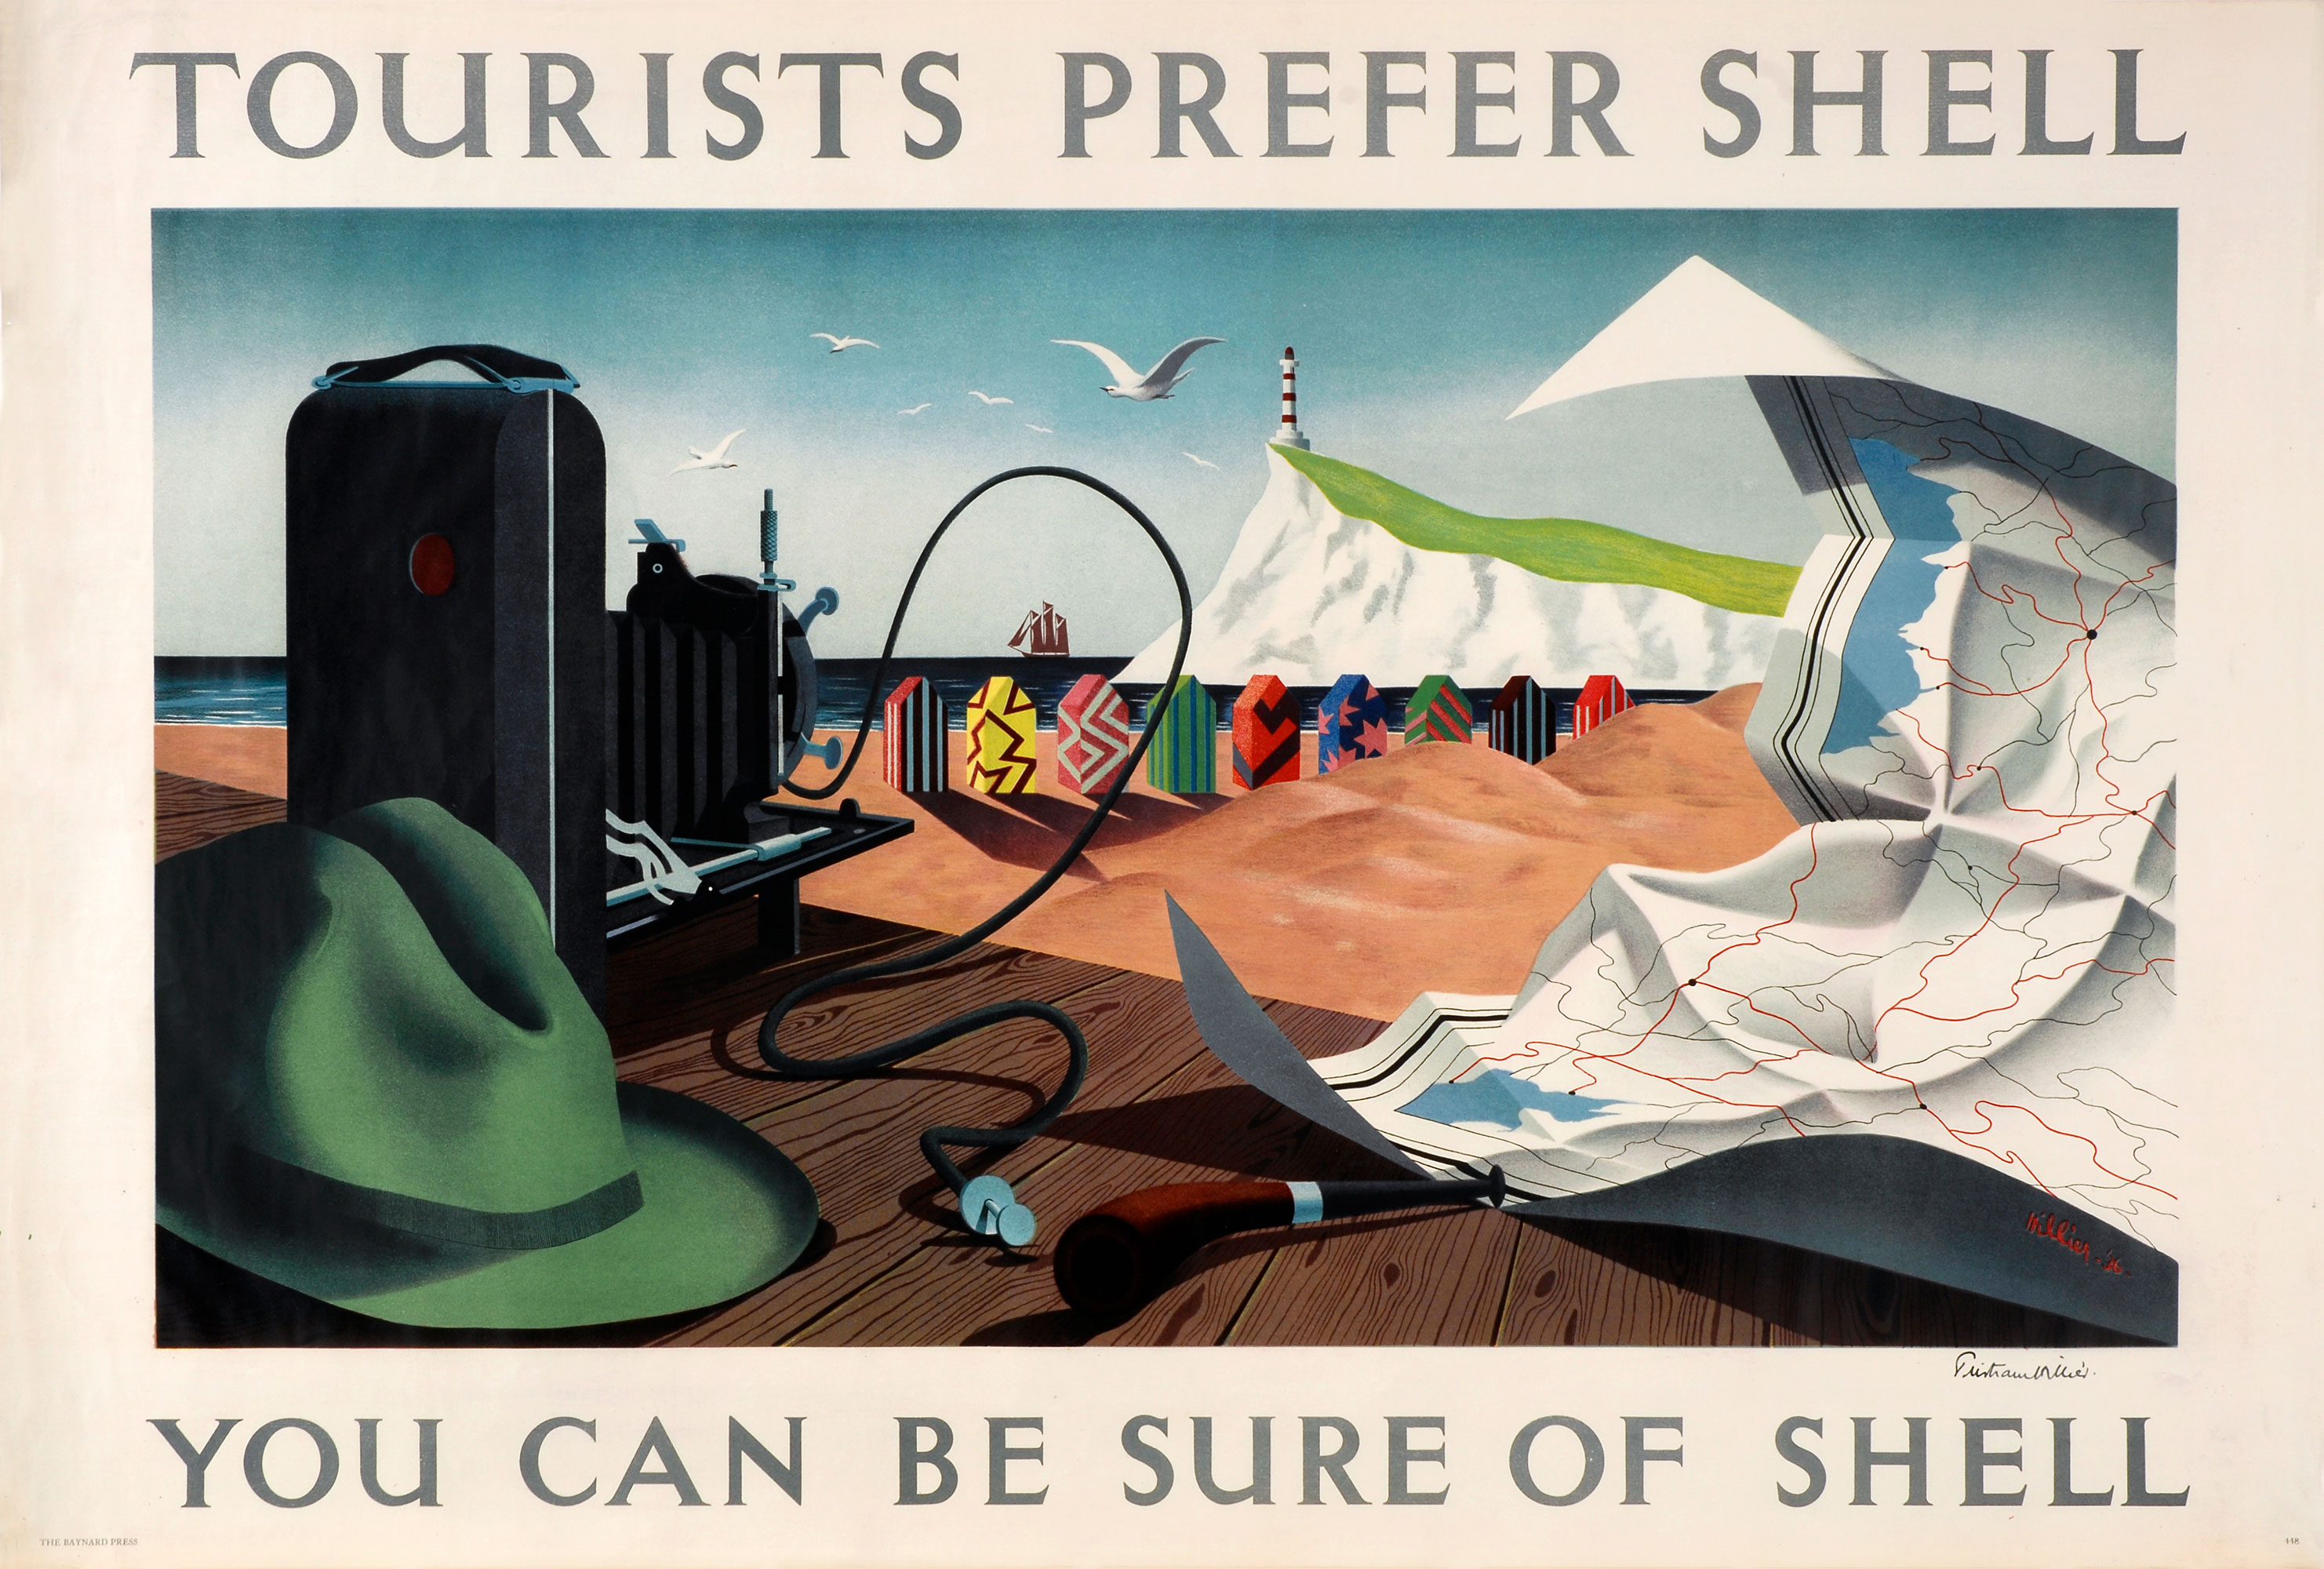 Shell poster number 448, Tourists Prefer Shell by Tristram Hillier. Painting of a beach scene, the sea is in the background with a galleon type ship sailing by. A white cliff with a lighthouse is in the background. There are brightly coloured and patterned beach huts on the shoreline. There is a table at the forefront of the picture showing various tourist paraphernalia, including a map.